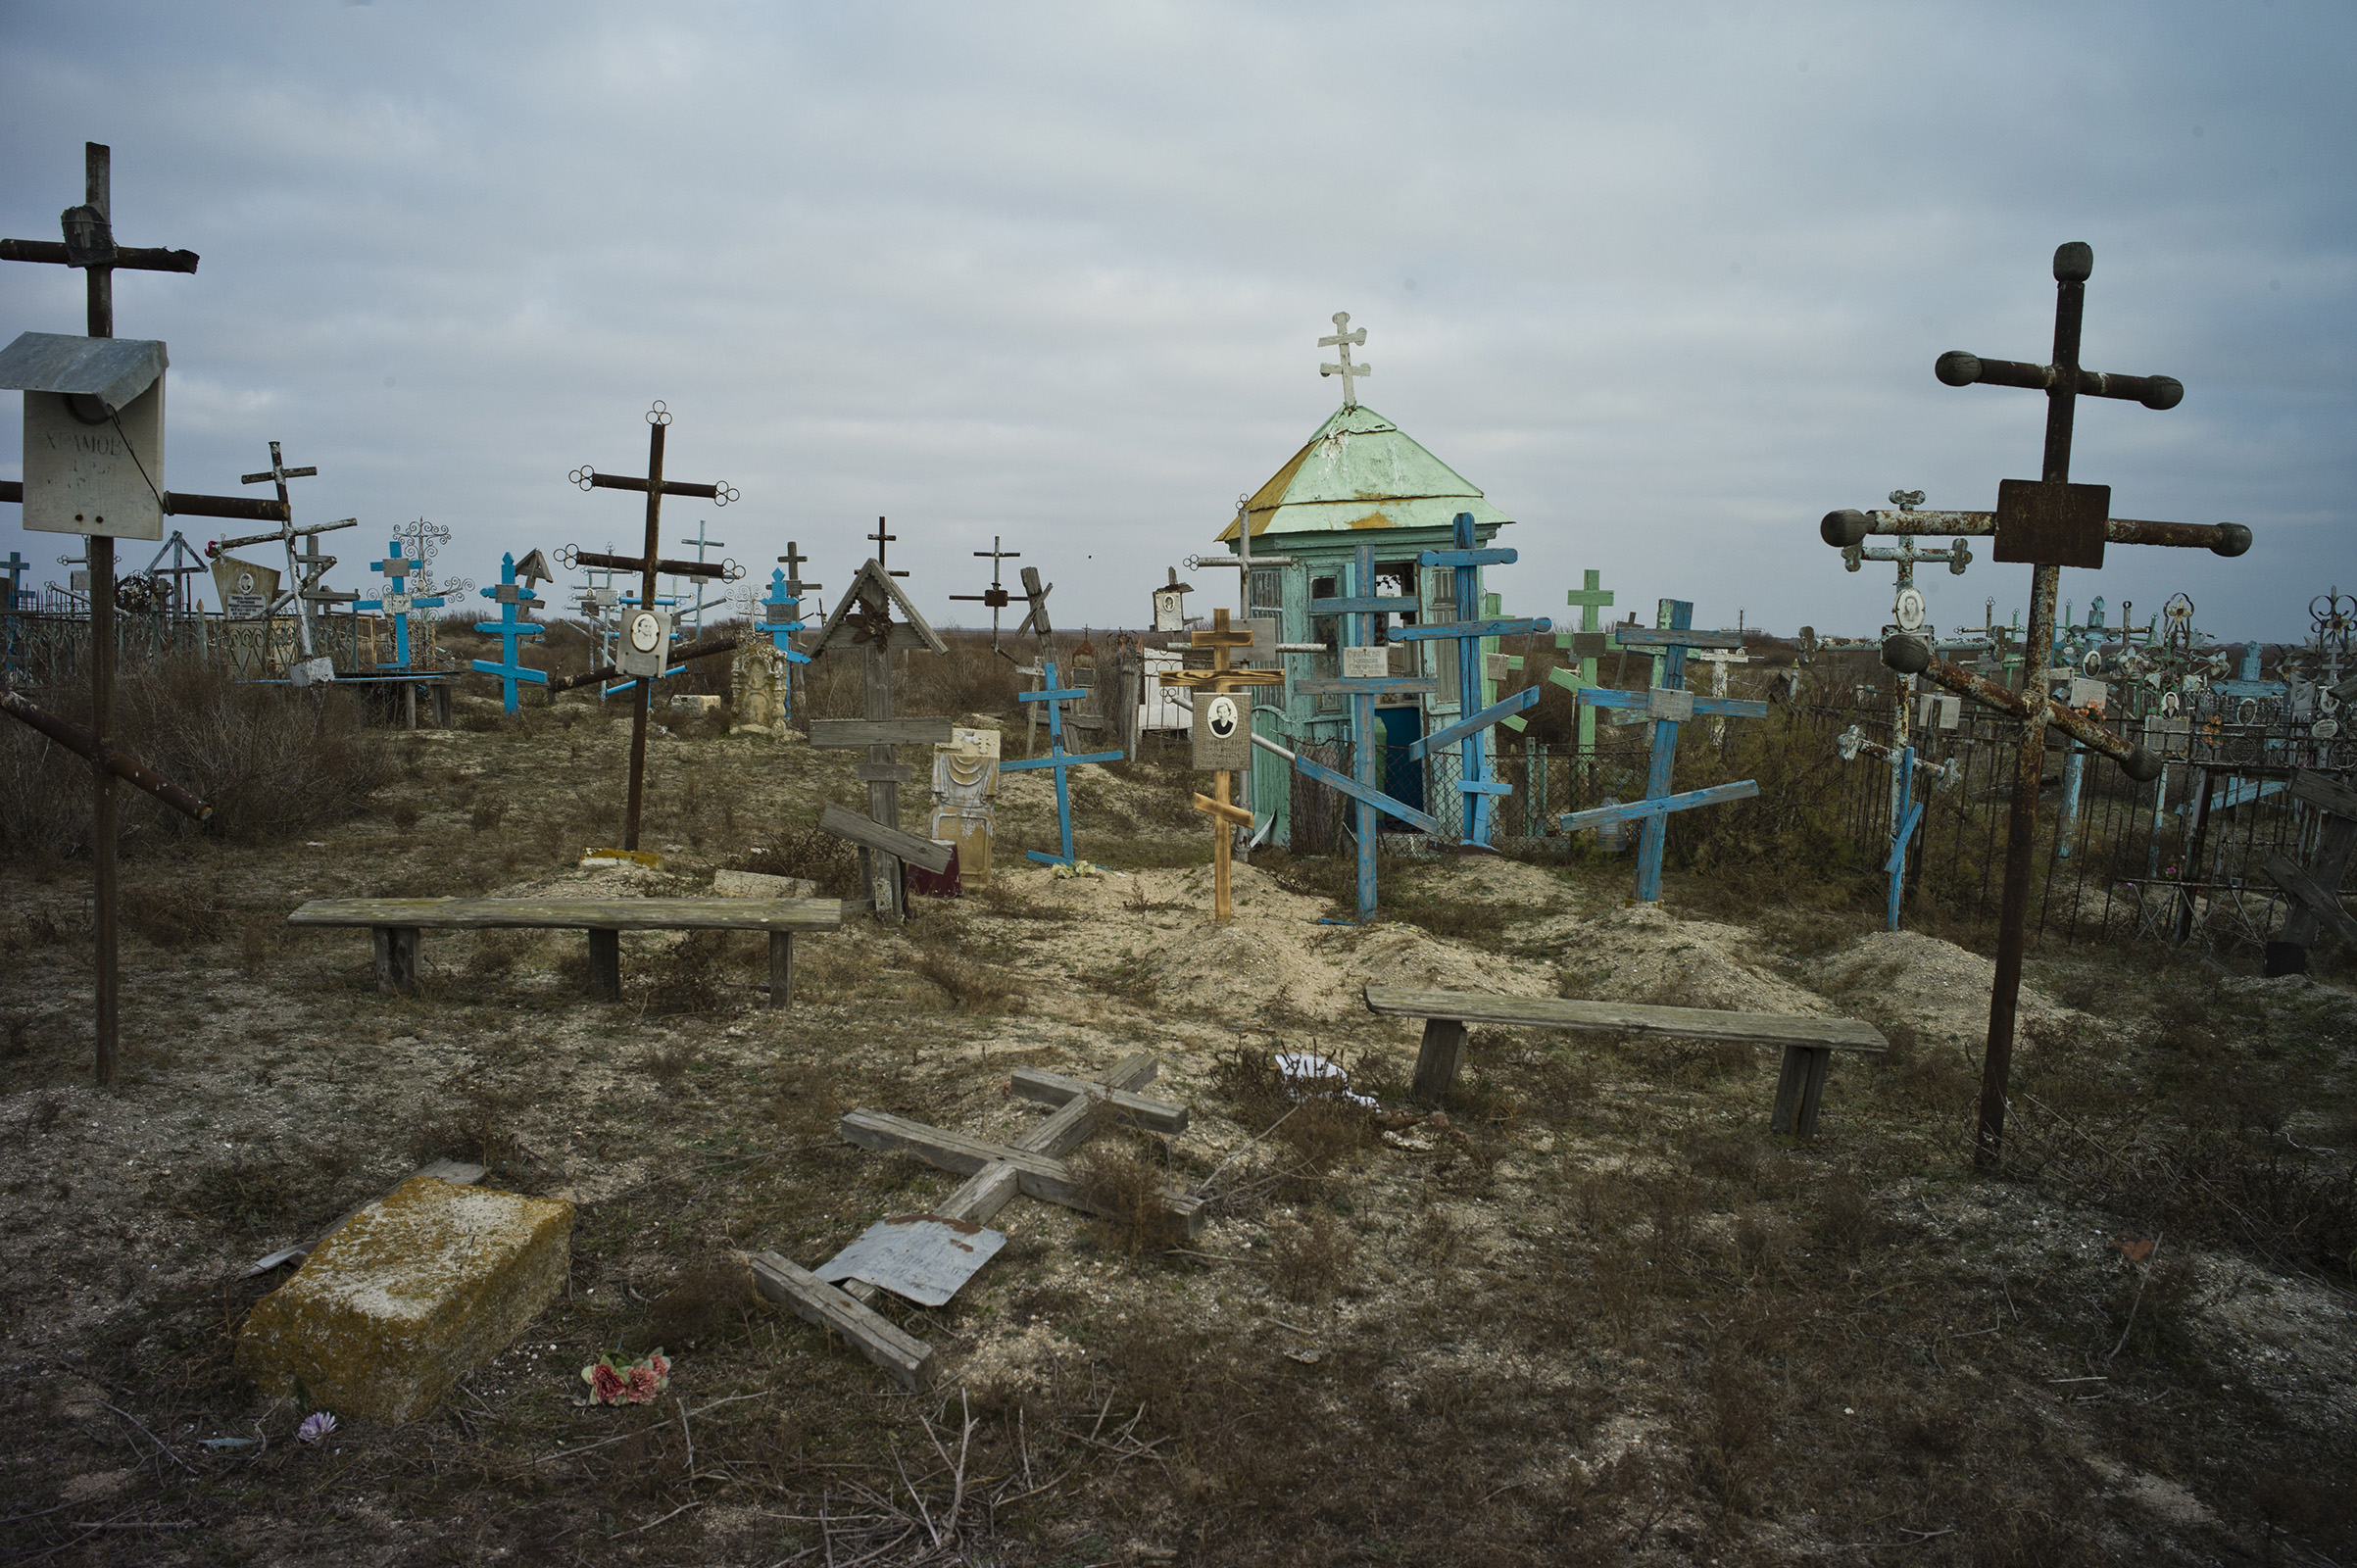 Russia, Dagestan, Chechen Island, 26 November 2013